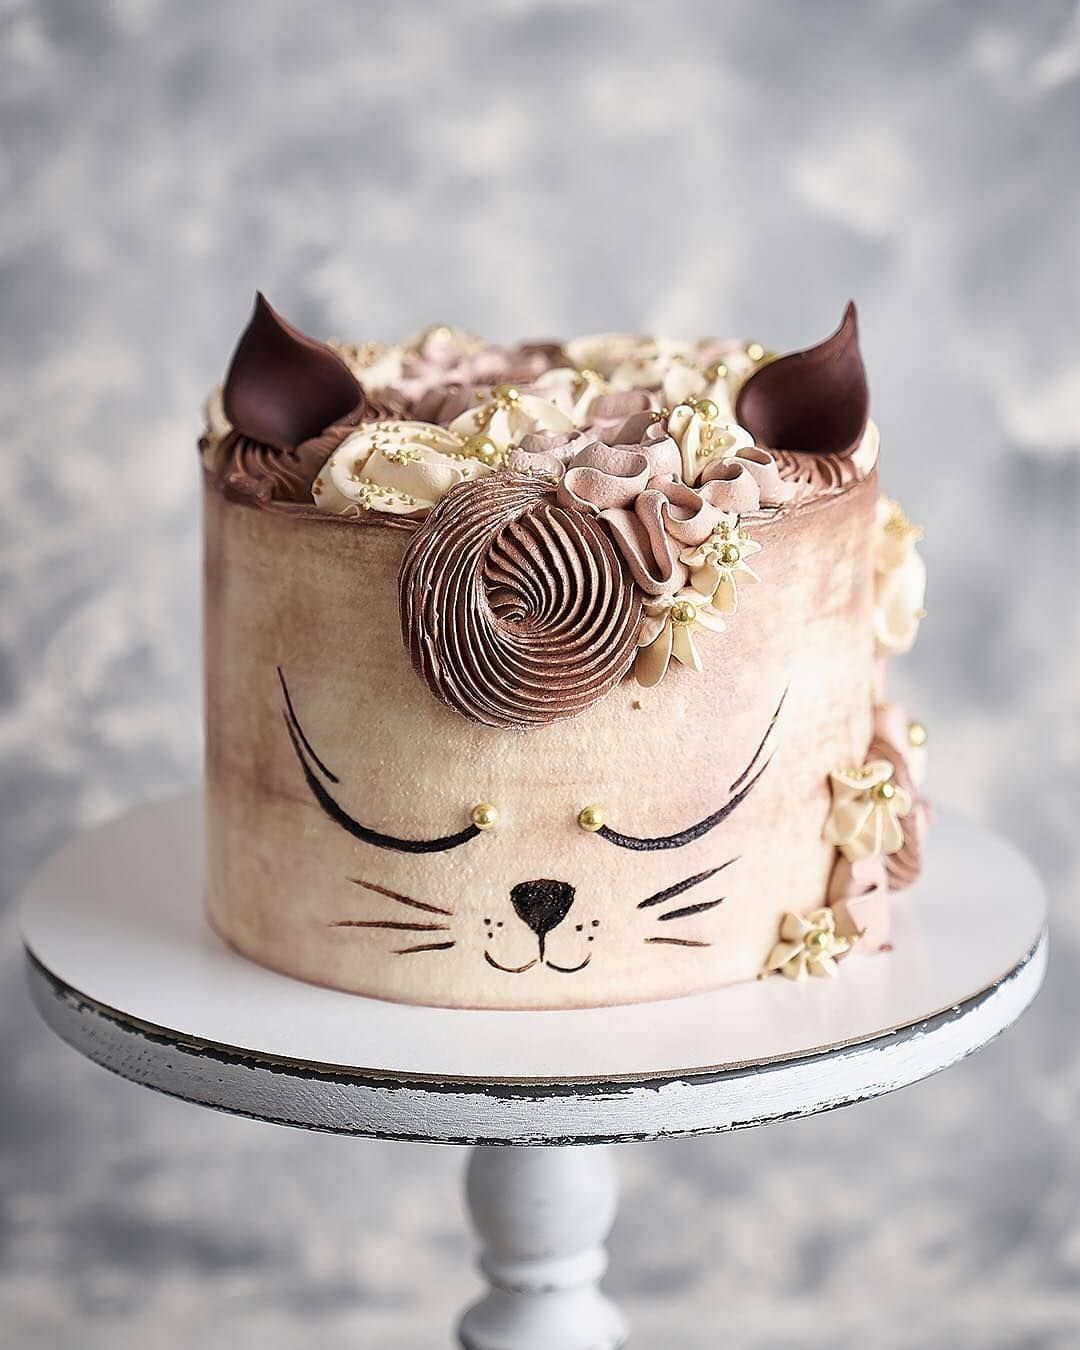 "Daily Baking Ideas 🍰 on Instagram: ""Ginger elegant cat 🐈 Yay or Nay?  Repost from @yummytreats.food 📷 @annabel_bakery . . . #weddingideas #chocolate #dessert #instacake…"""